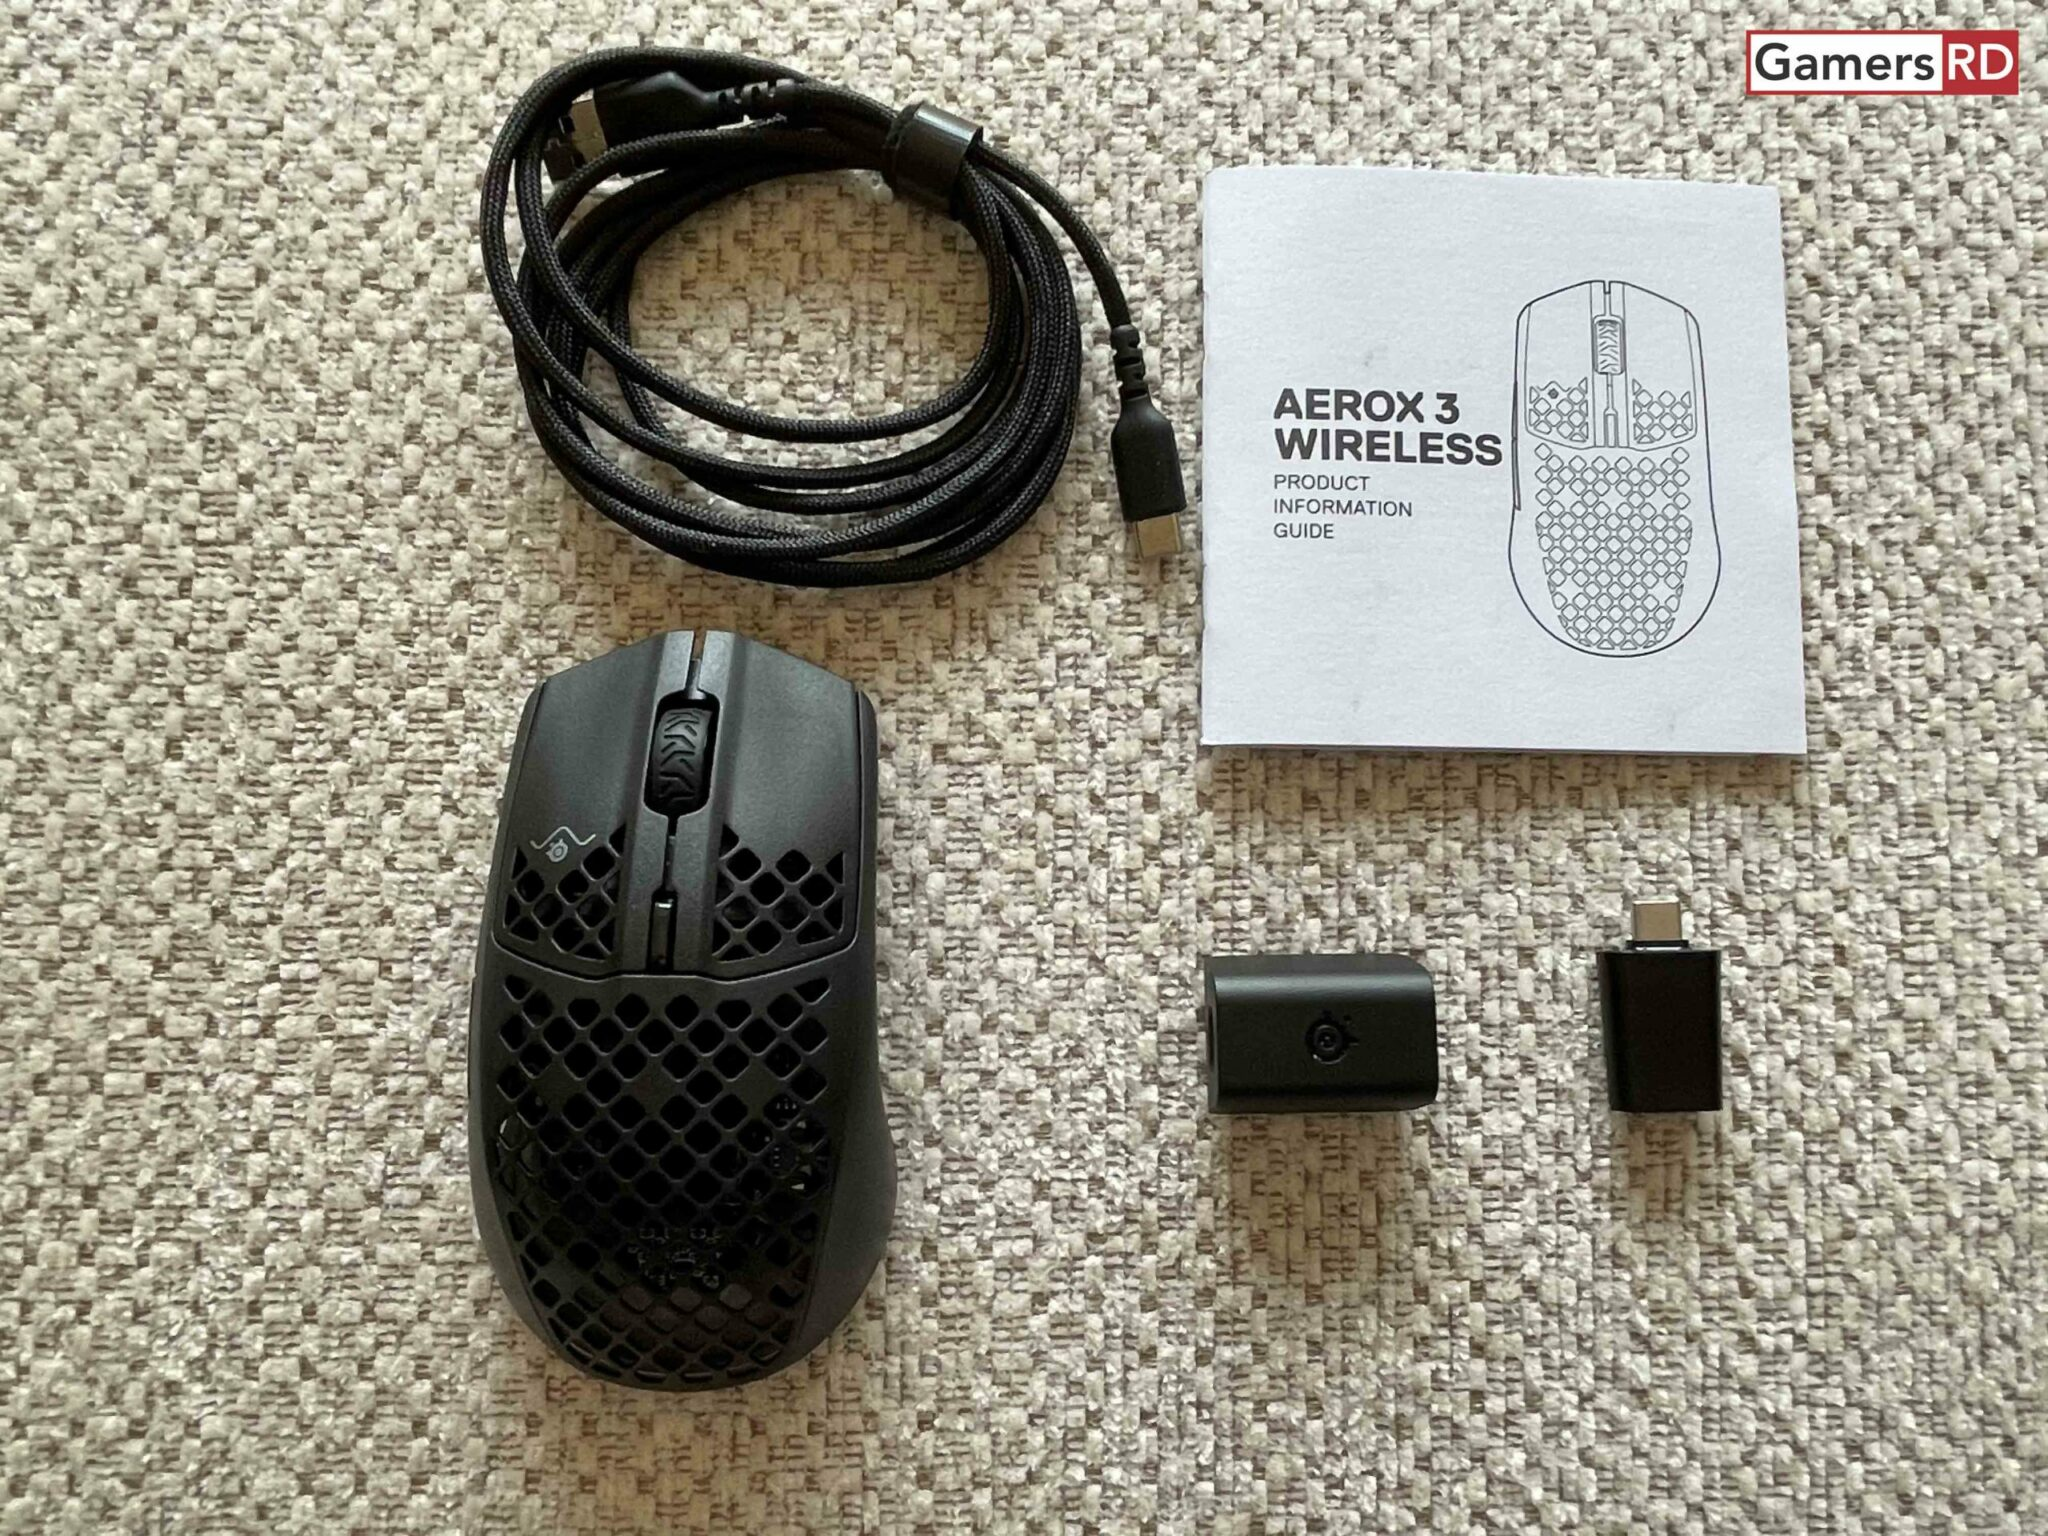 Steel Series Aerox 3 Wireless mouse gaming, Review 3 GamersRD